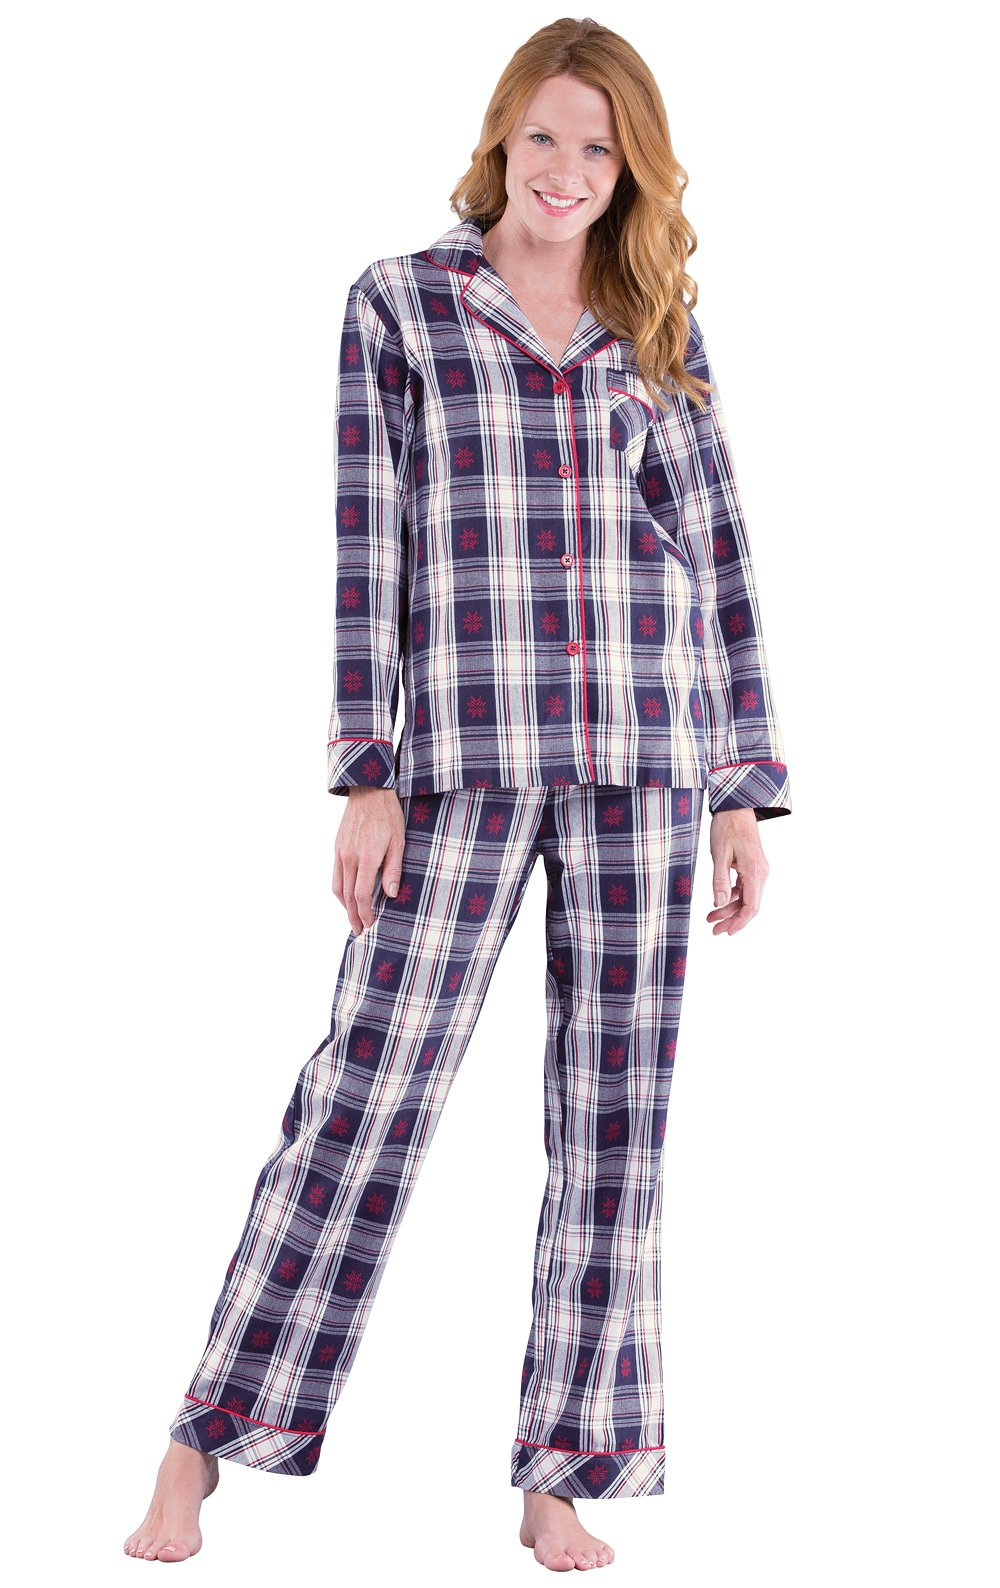 PajamaGram Button Down Pajamas for Women - Cotton Plaid, Blue/Red, S, 4-6